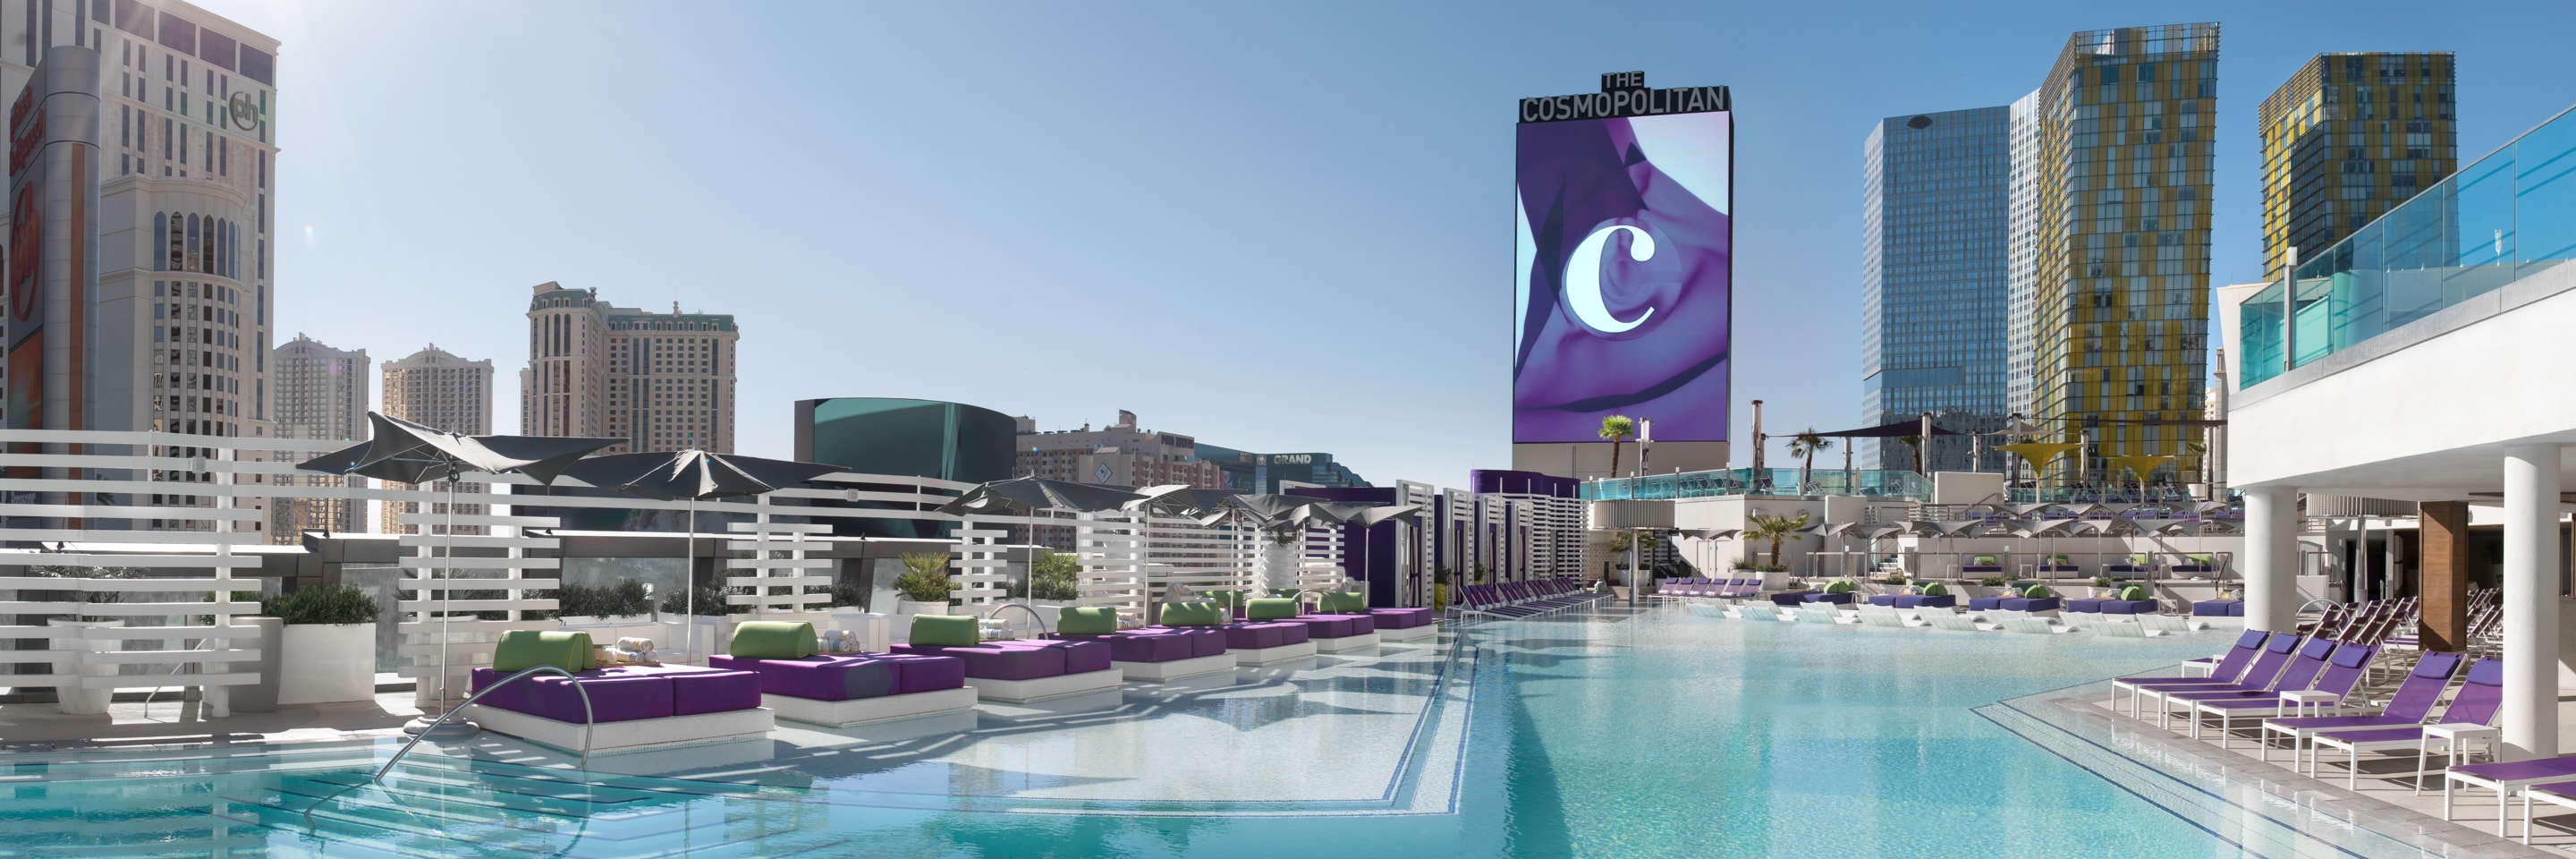 Outdoor pool at The Cosmopolitan of Las Vegas